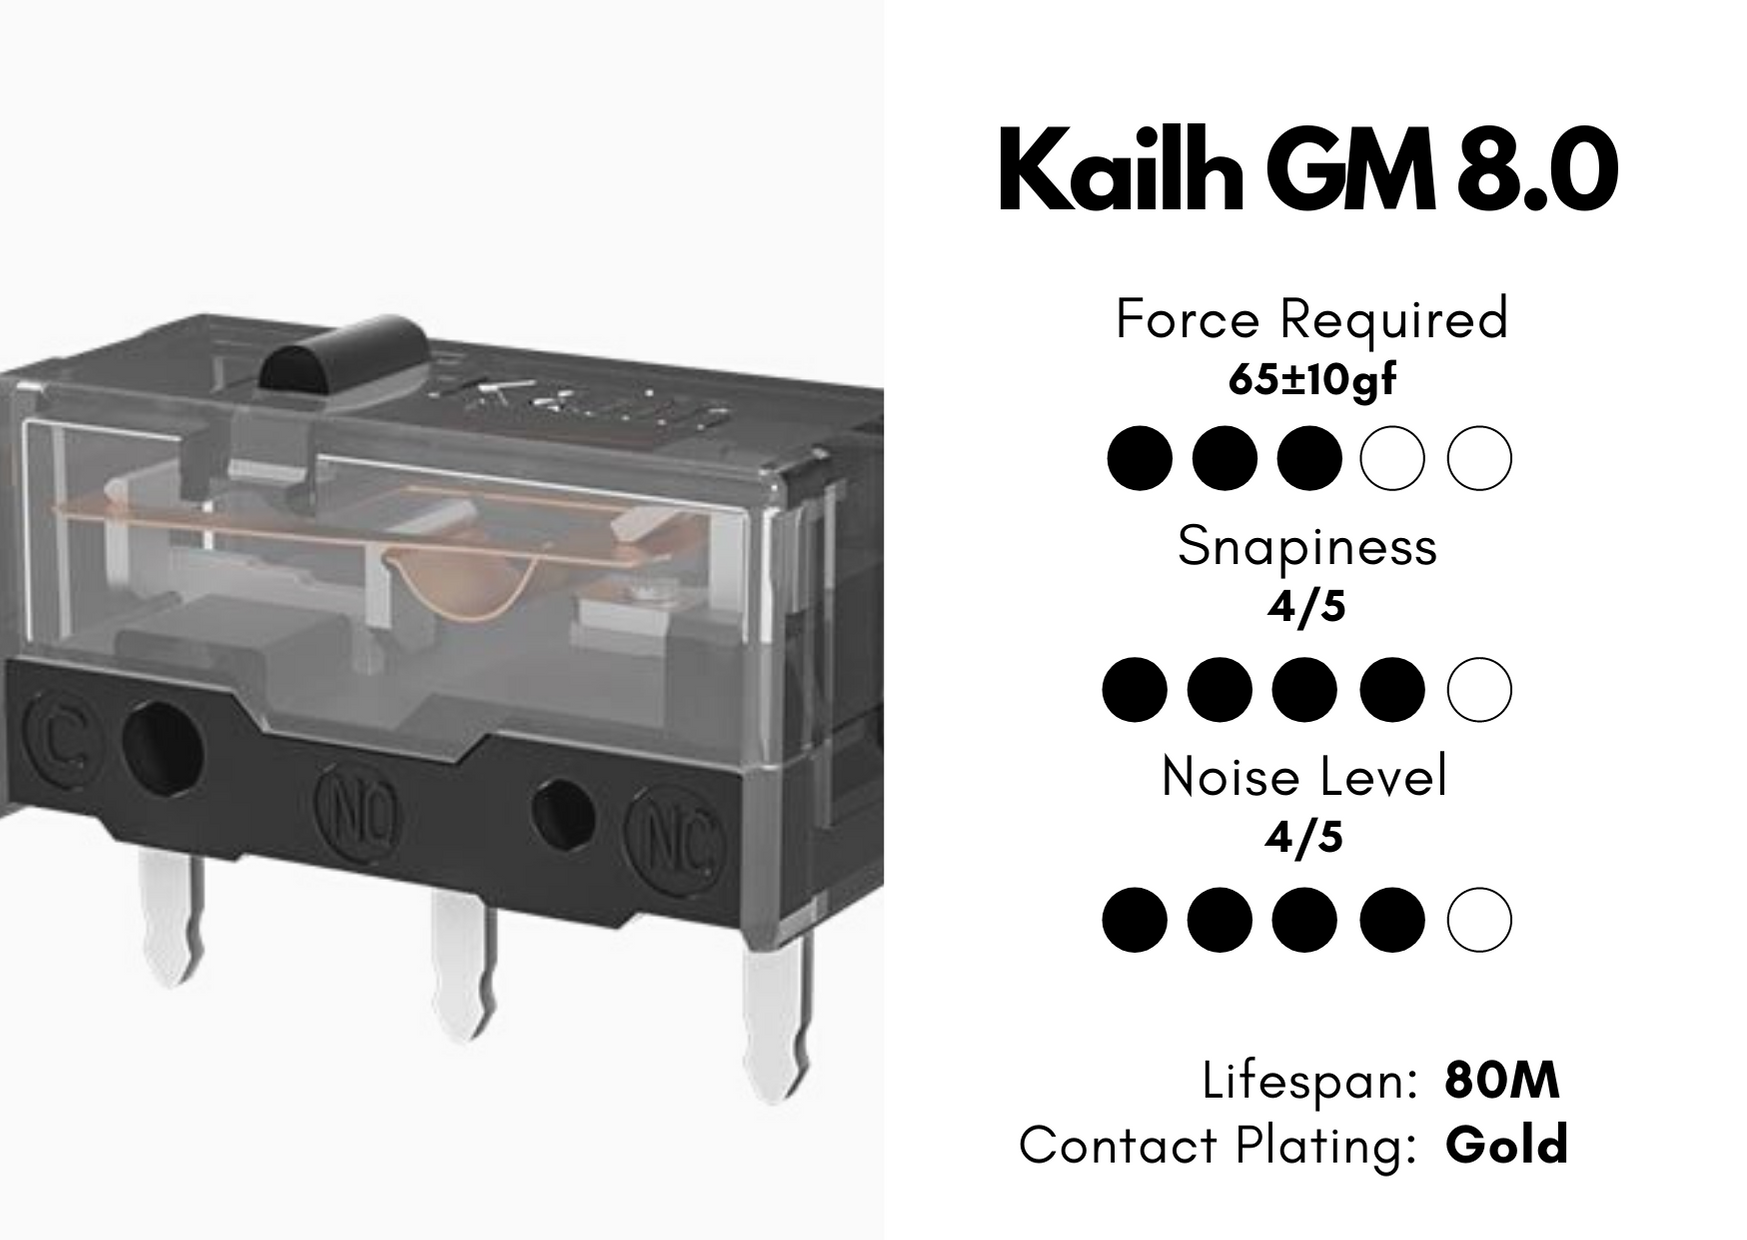 kailh gm 8.0